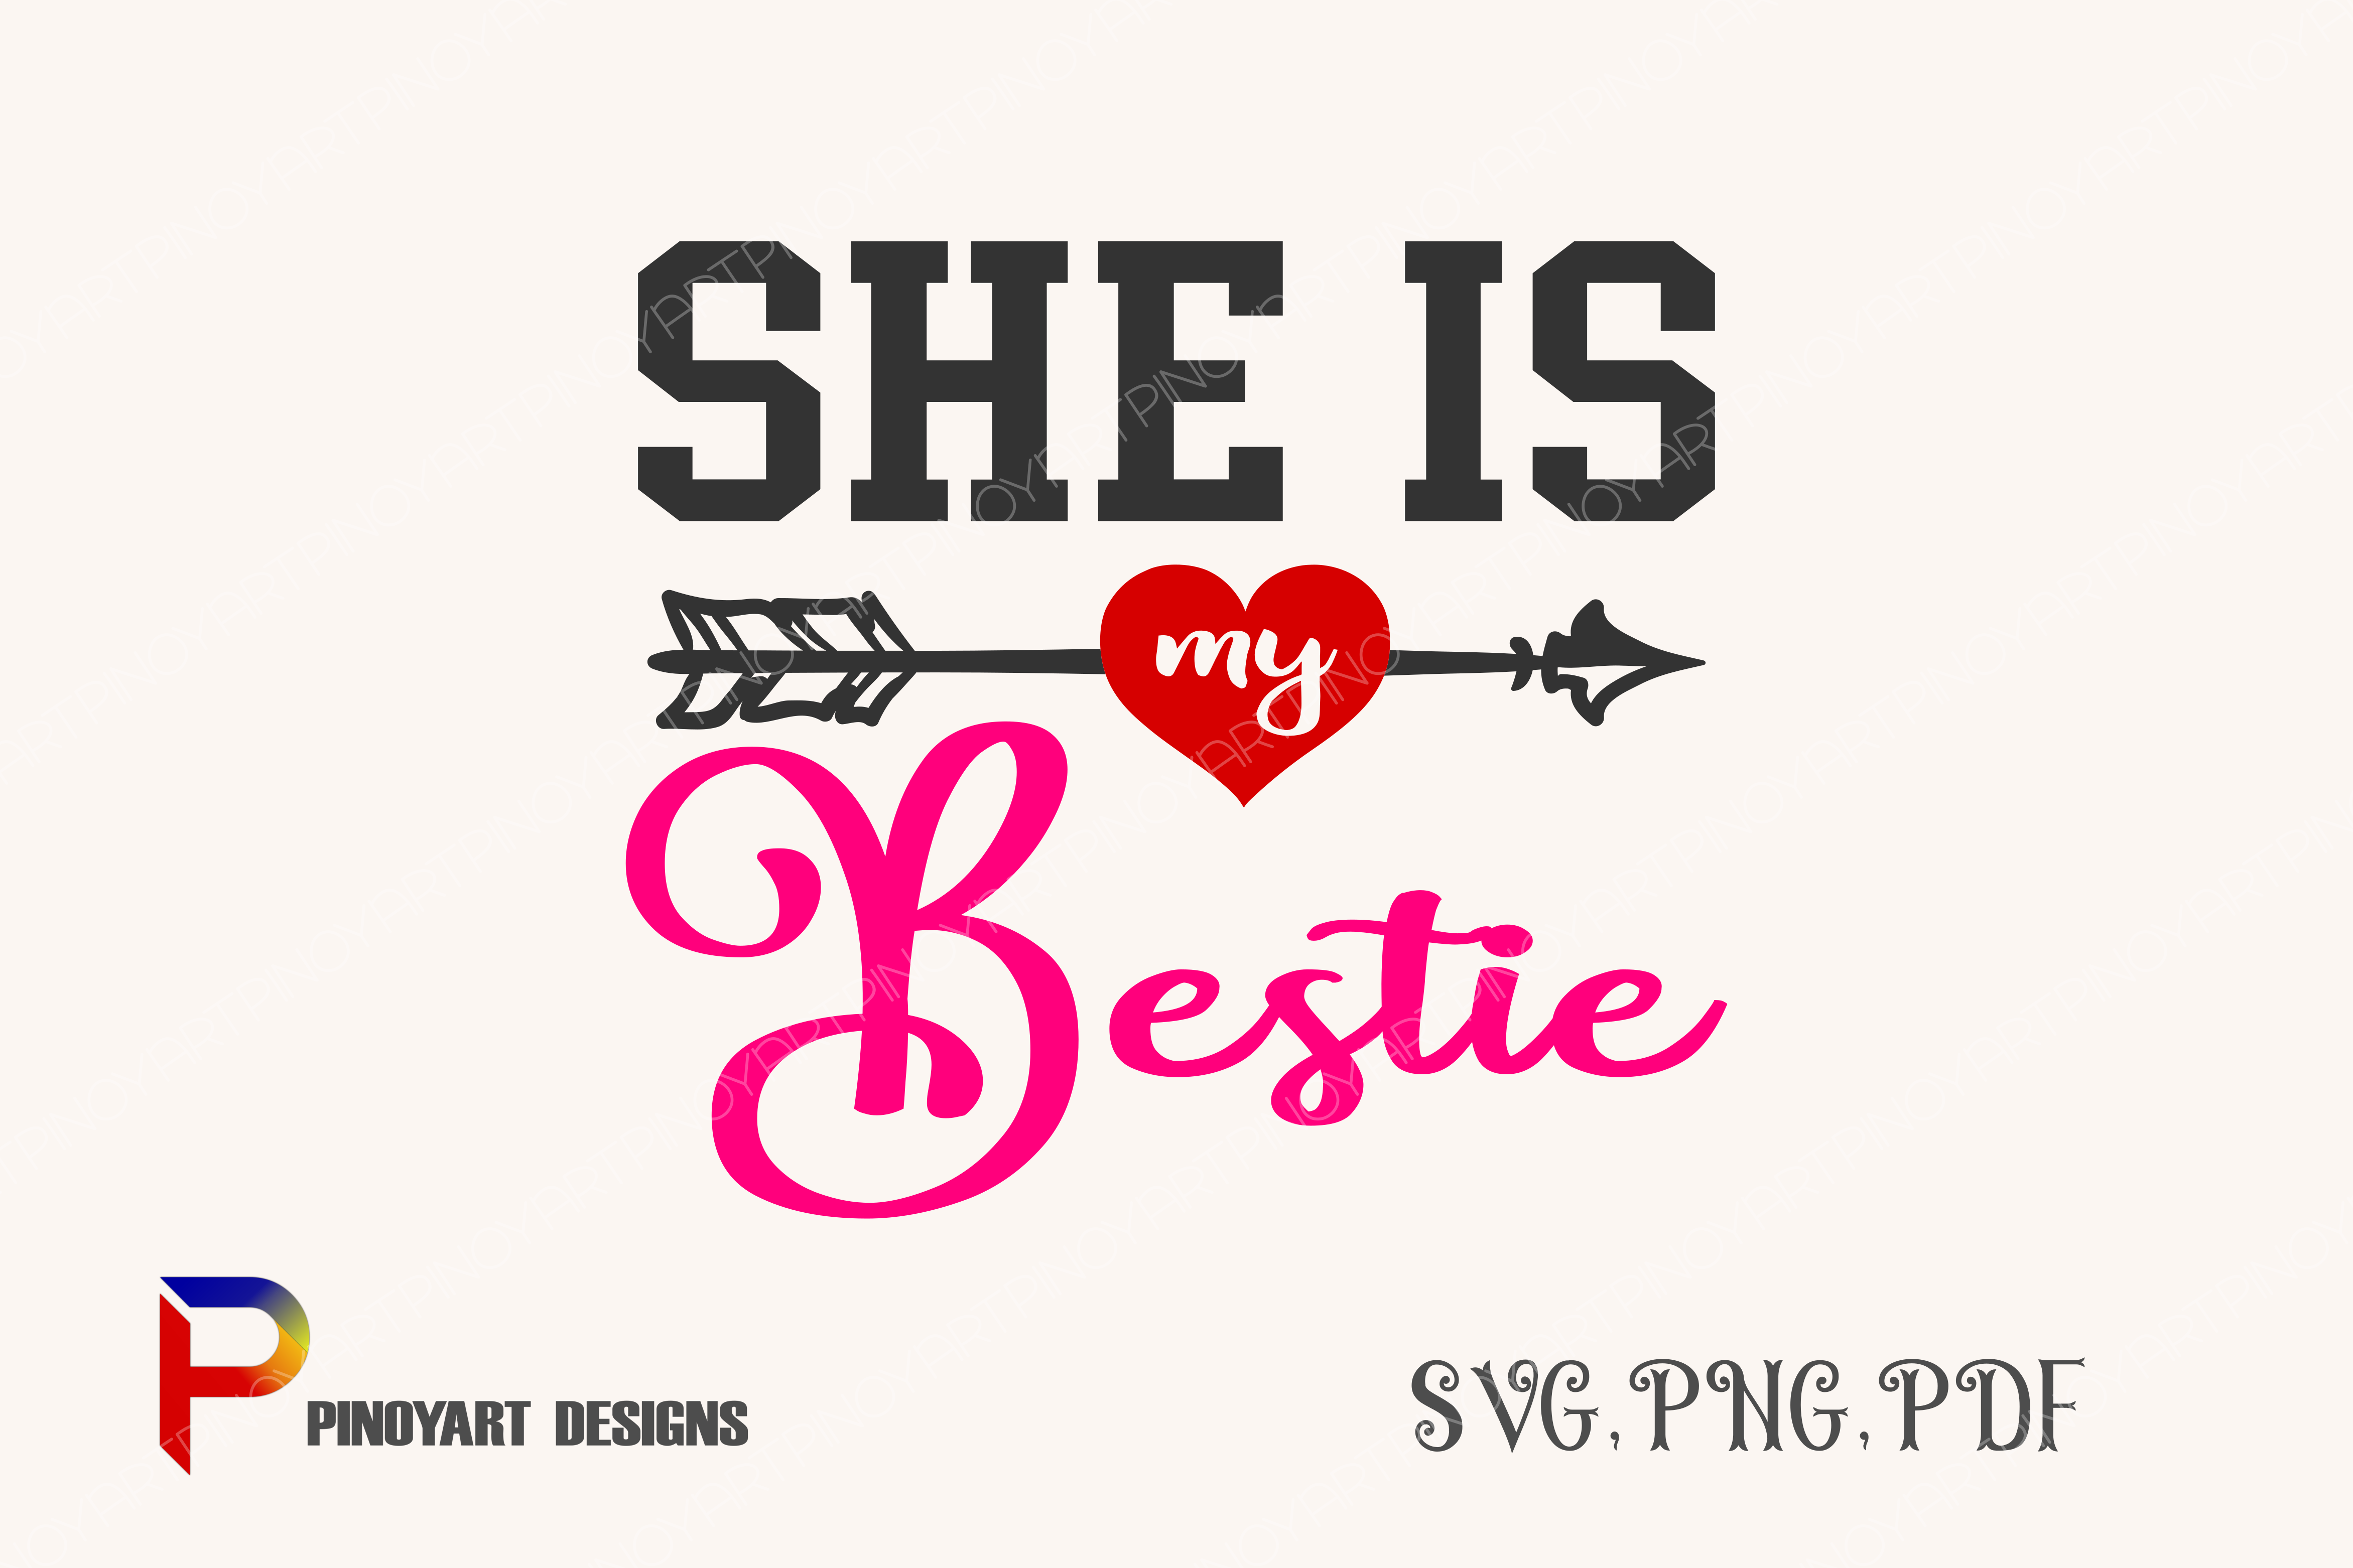 Download Free She Is My Bestie Graphic By Pinoyartkreatib Creative Fabrica for Cricut Explore, Silhouette and other cutting machines.